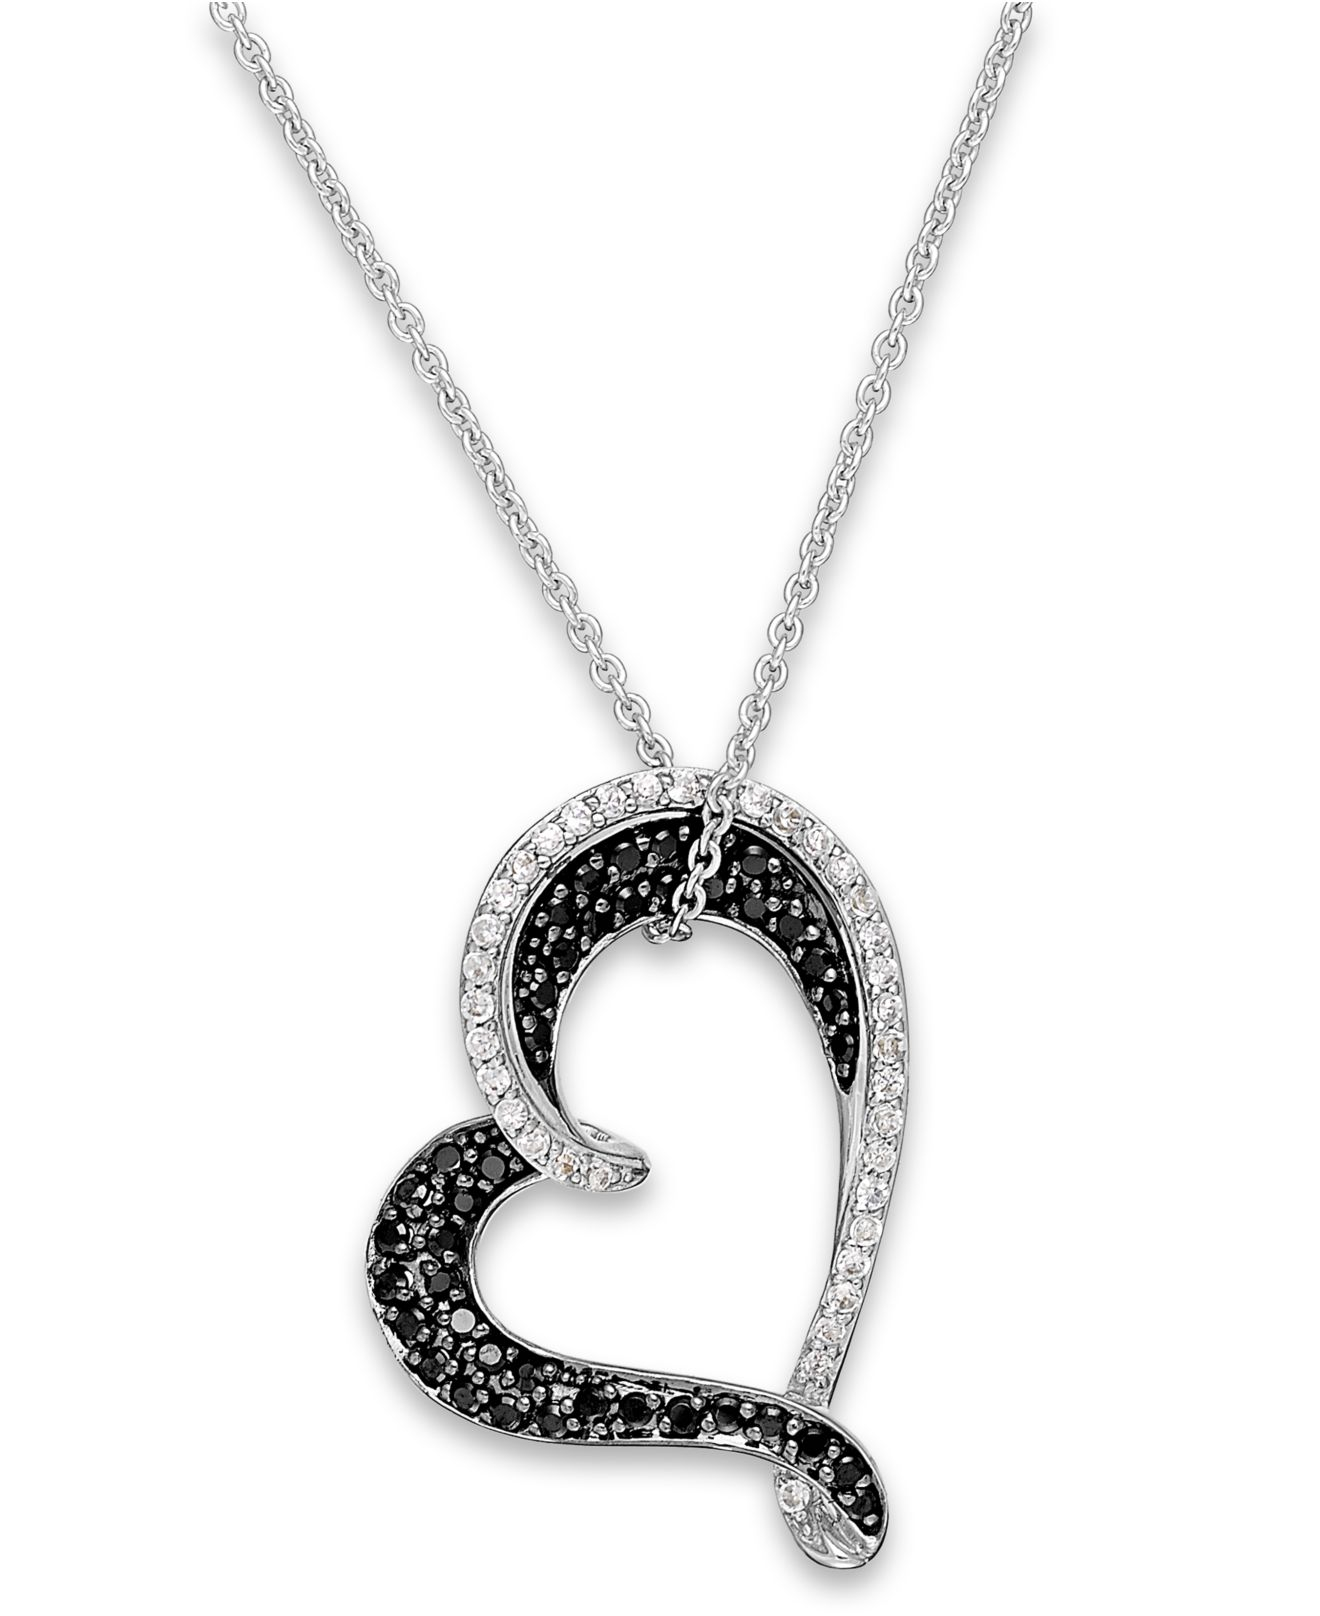 Macy s Black And White Diamond Heart Pendant Necklace In Sterling